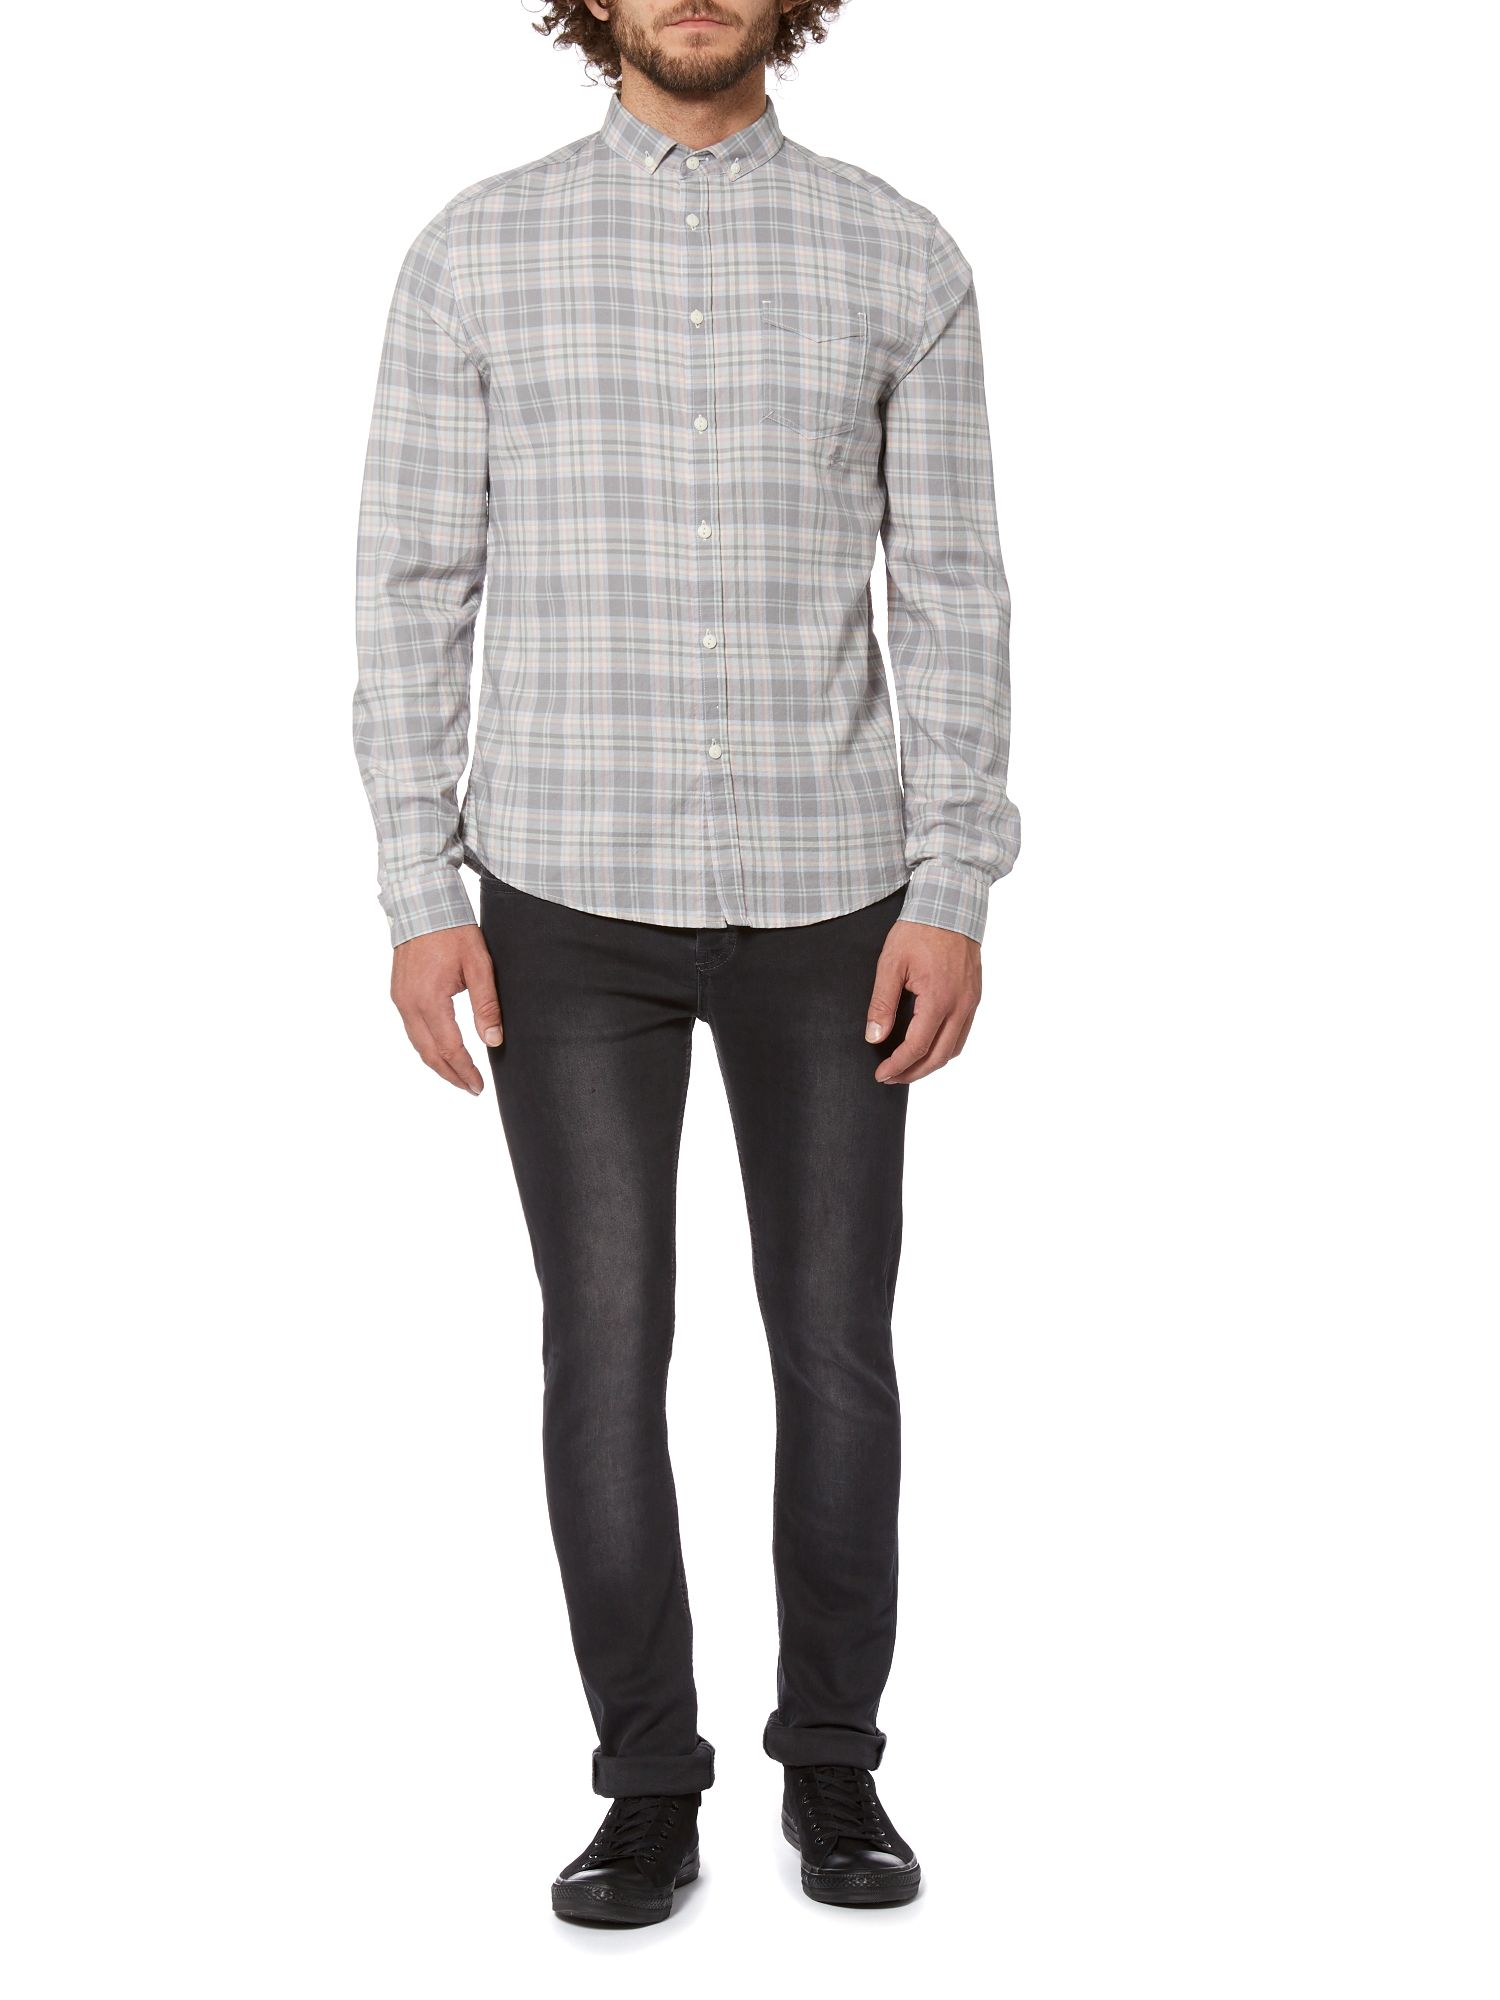 Crosby long sleeve check shirt